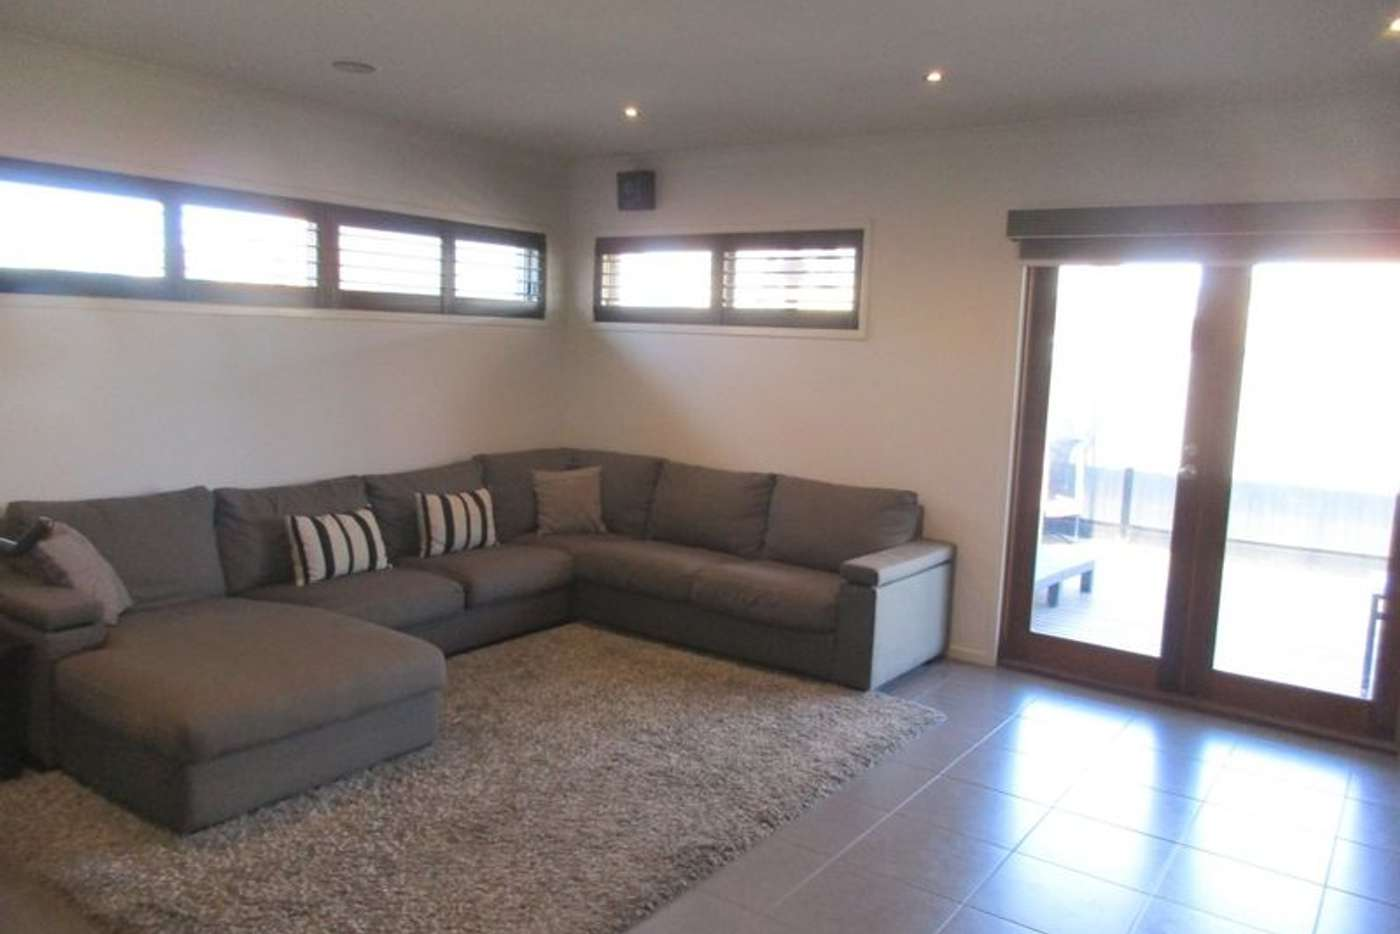 Sixth view of Homely house listing, 33 Hermitage Parade, Derrimut VIC 3030